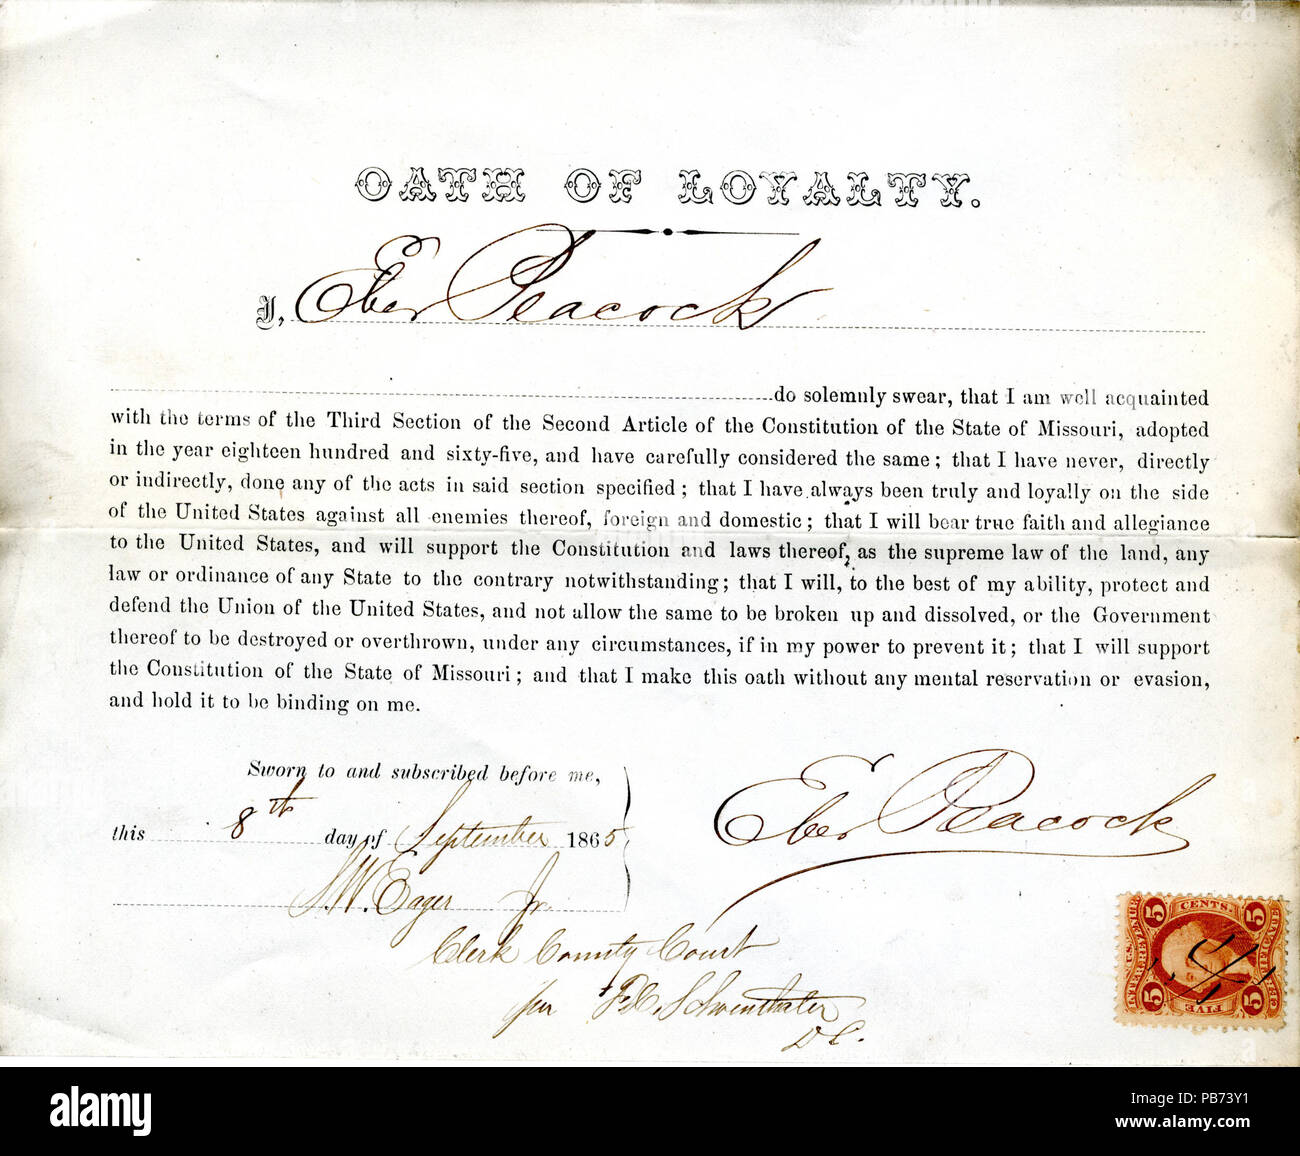 946 Loyalty oath of Eber Peacock of Missouri, County of St. Louis - Stock Image